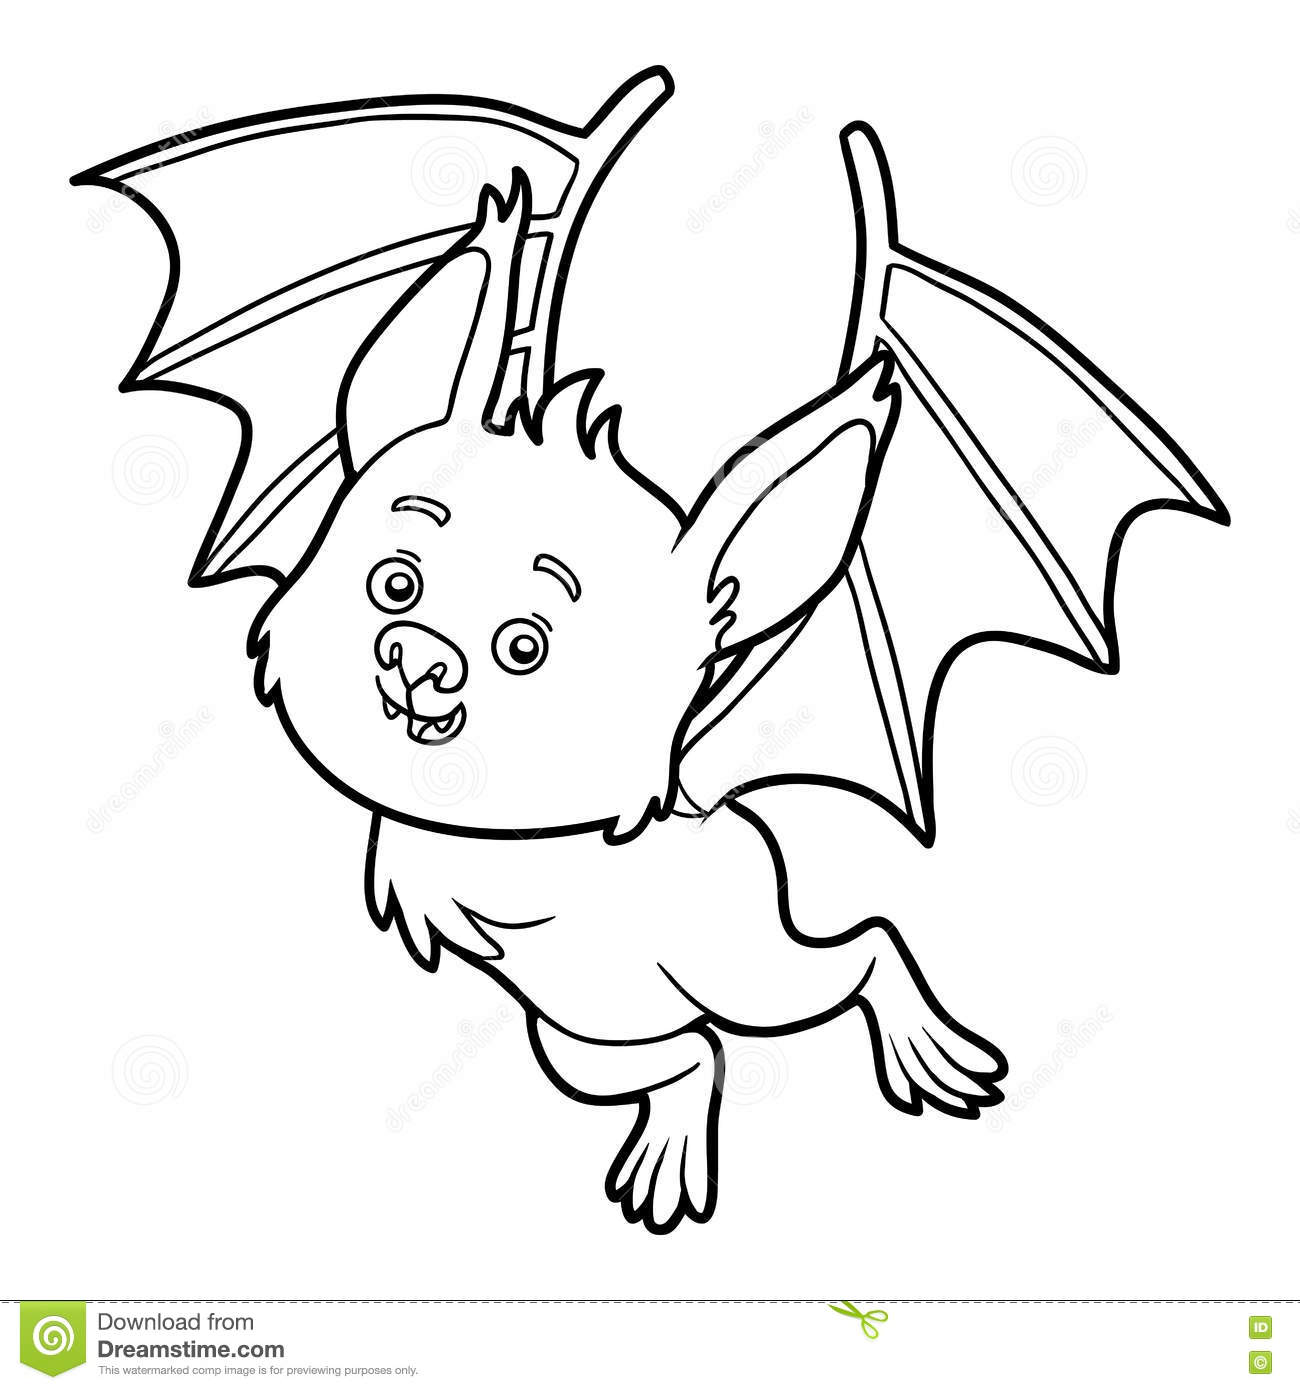 Coloring Book Bat Stock Vector Illustration Of Black